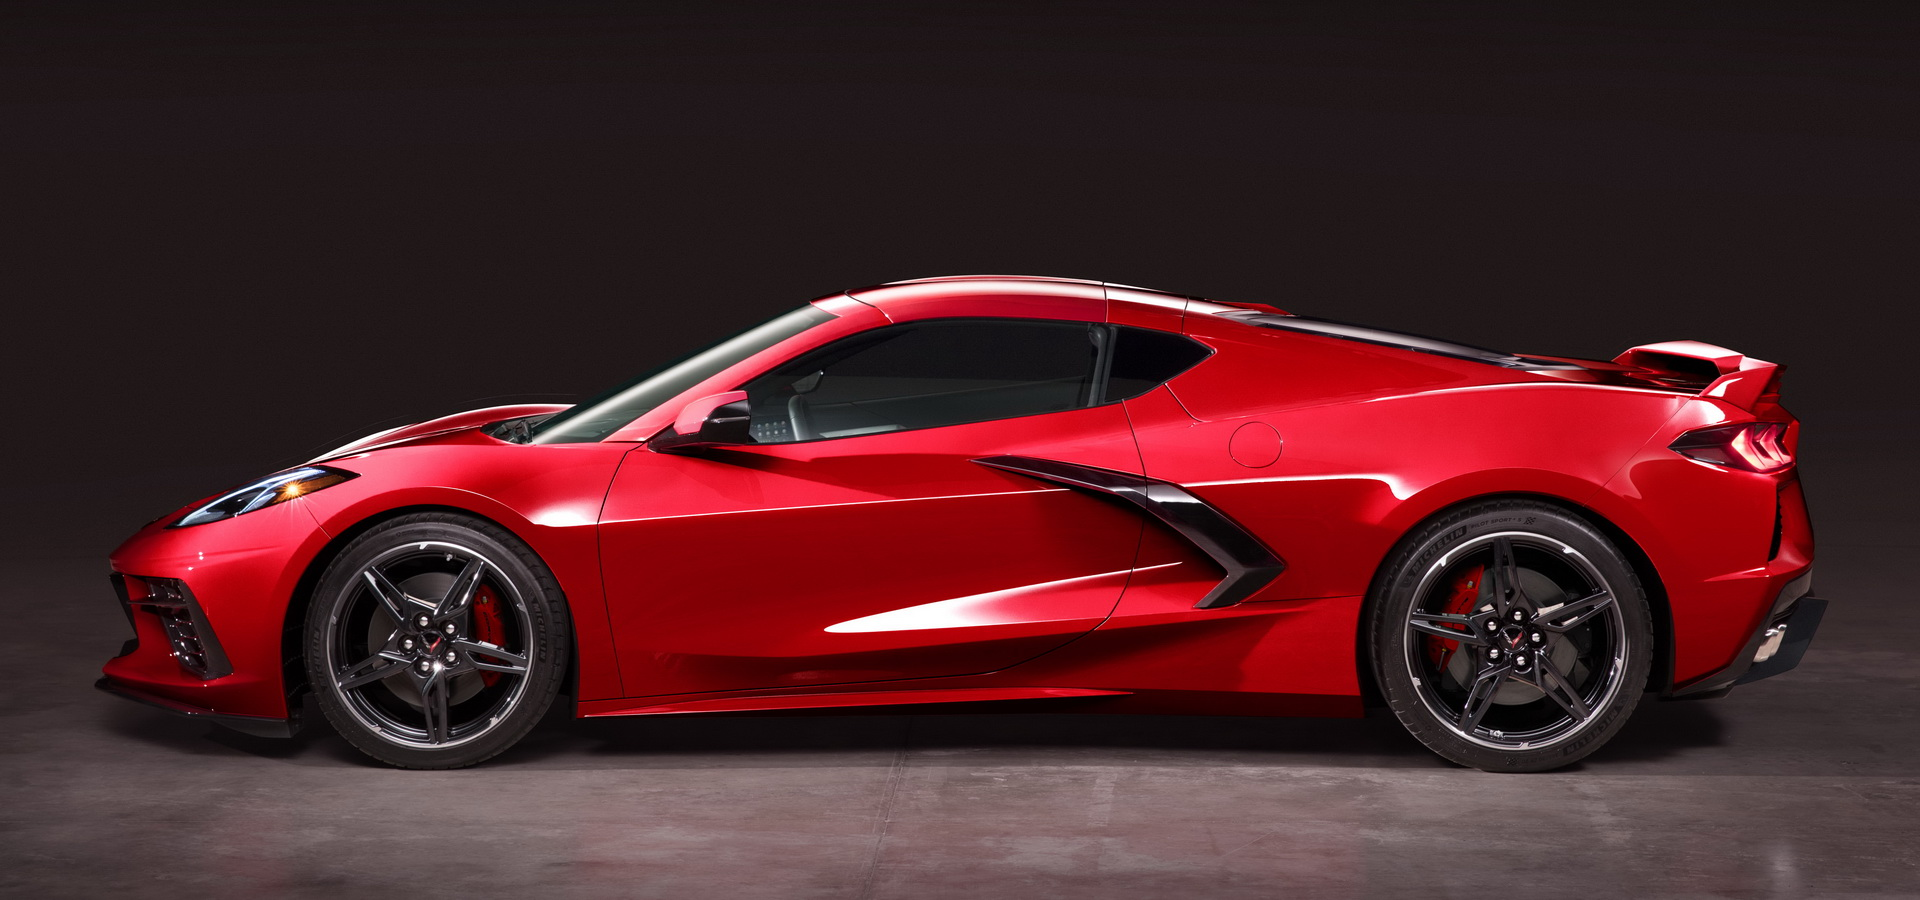 2020 Corvette Stingray Is Sort Of A Modern Ferrari 458 ...